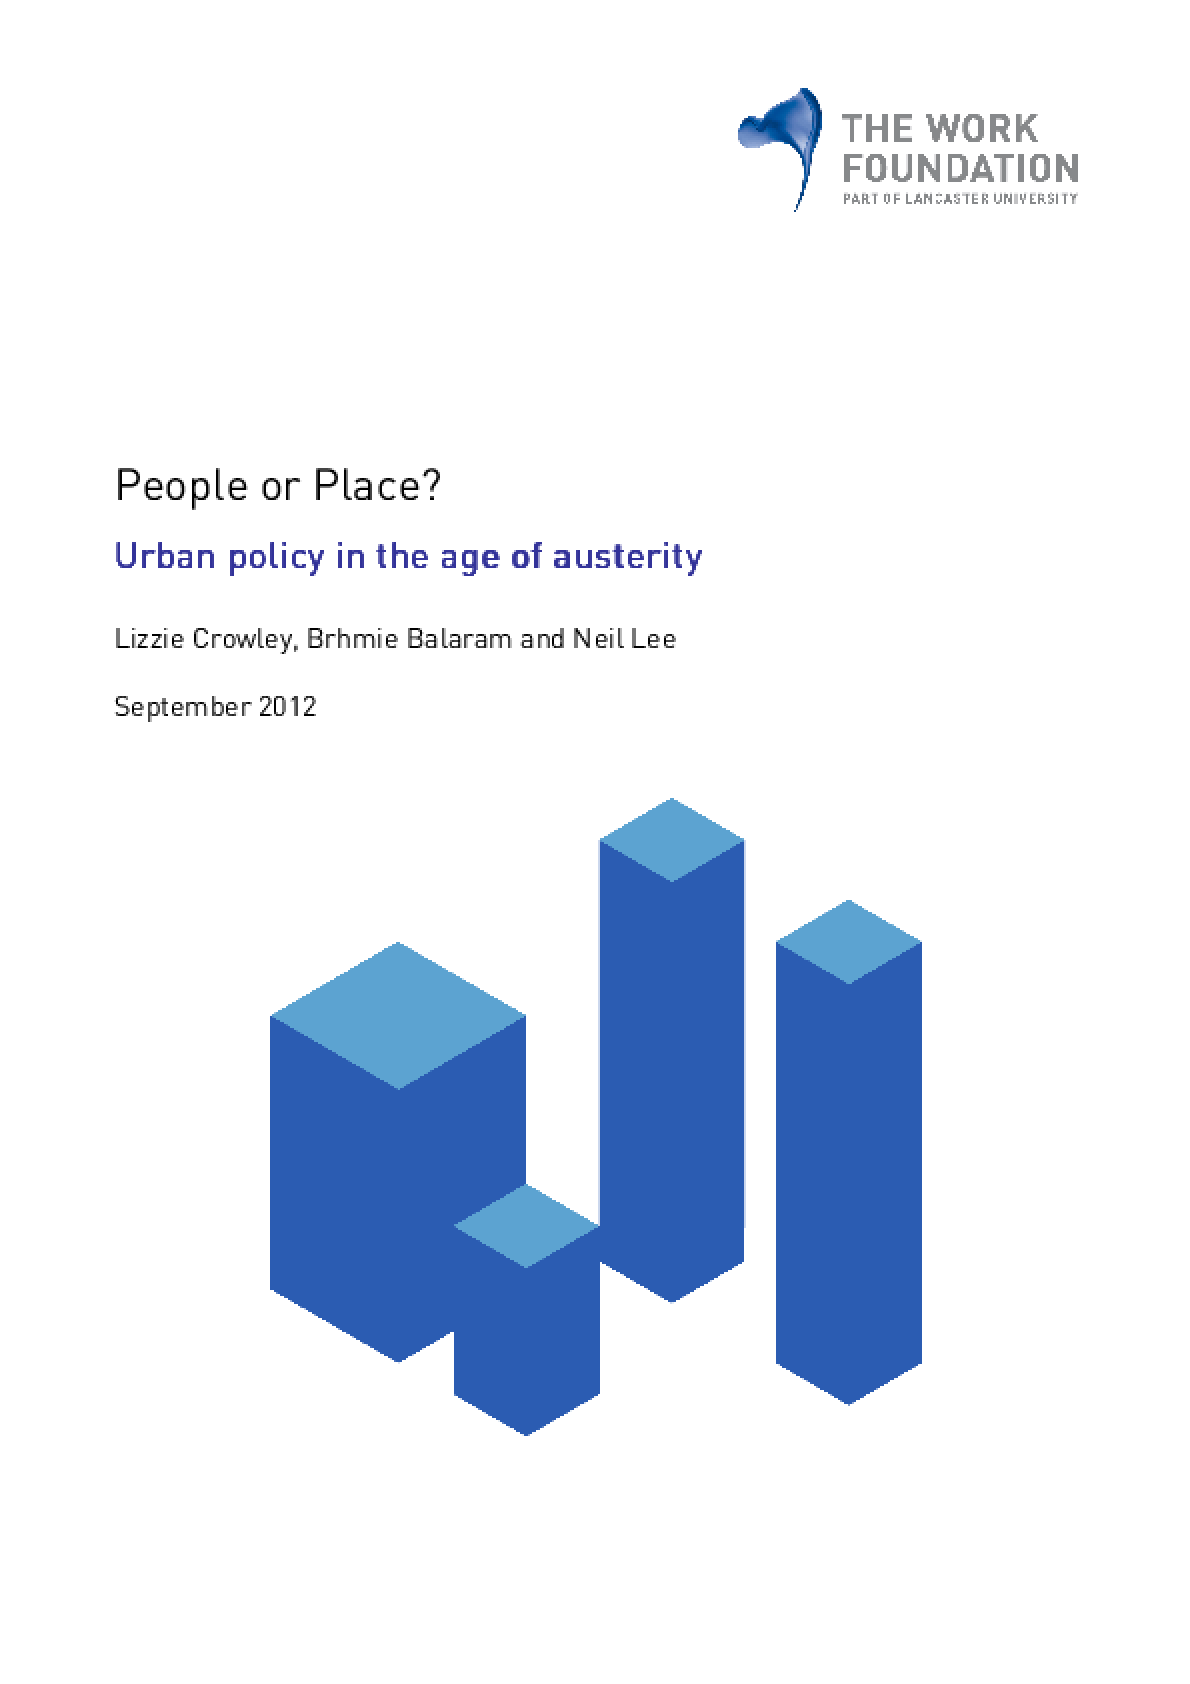 People Or Place? Urban Policy in the Age of Austerity.